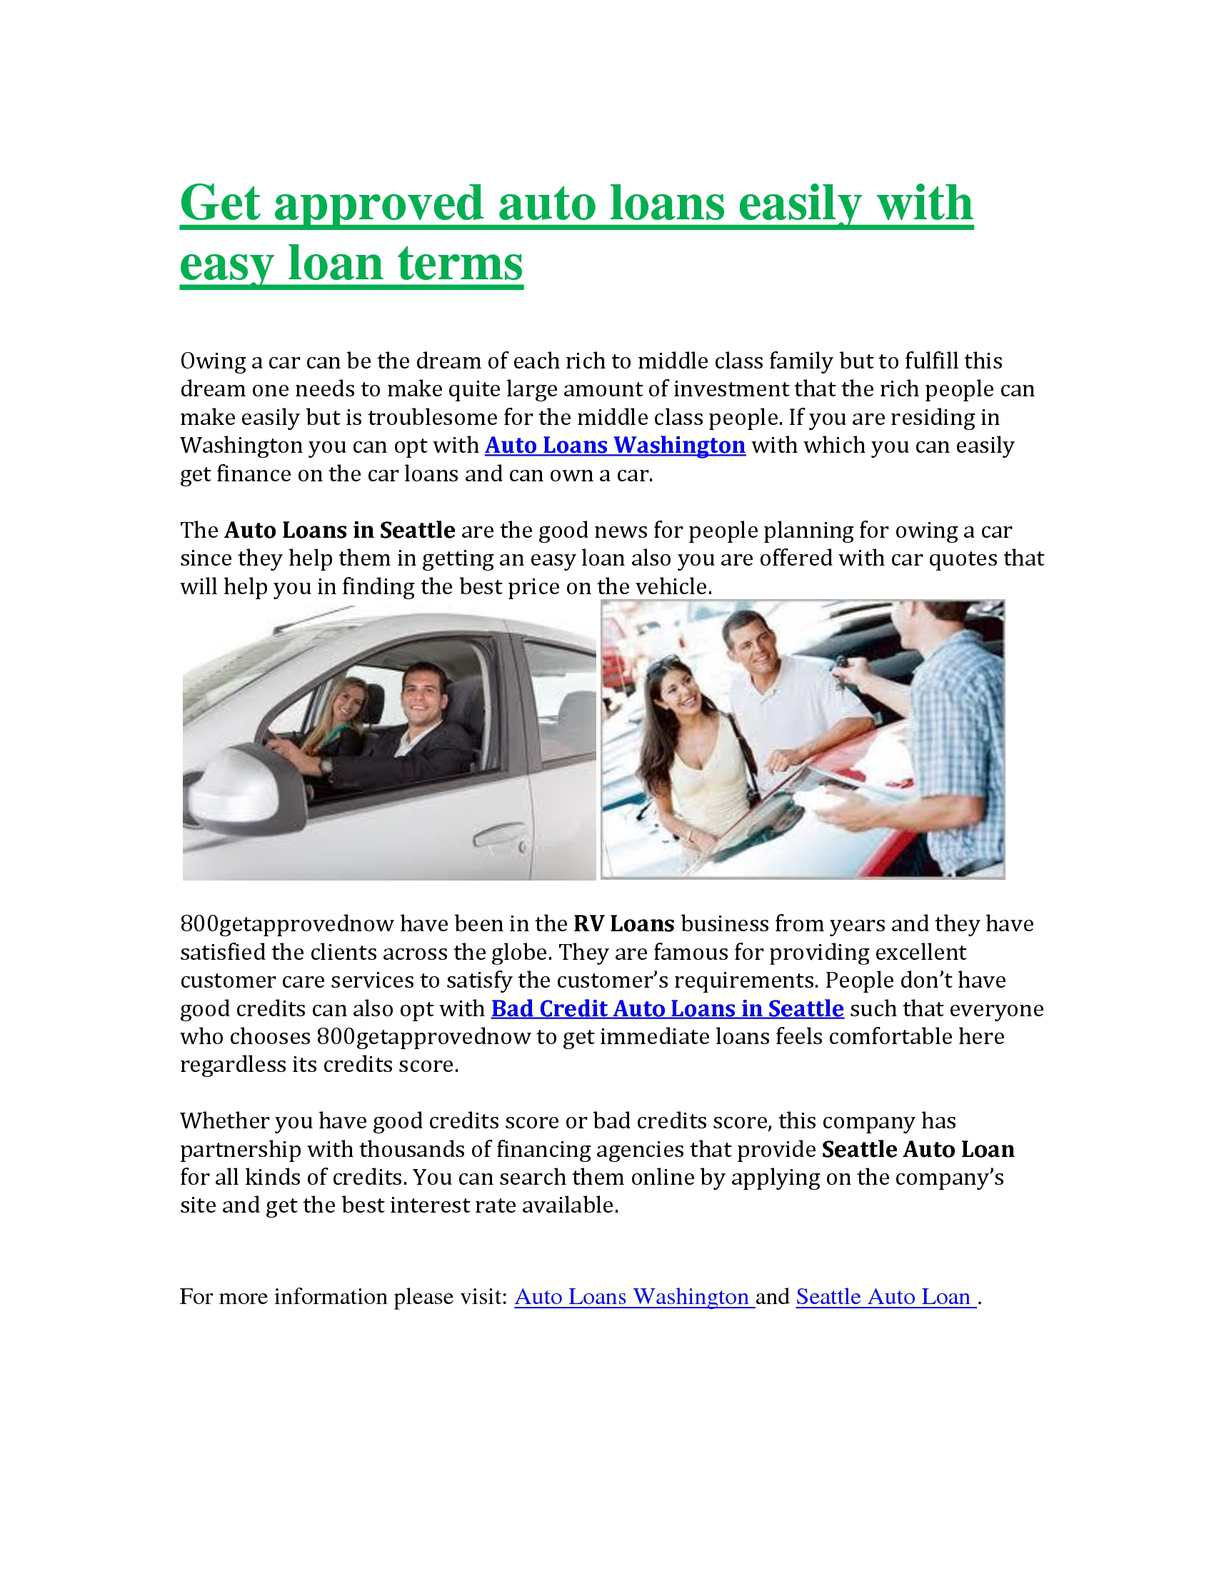 All Approved Auto >> Calameo Get Approved Auto Loans Easily With Easy Loan Terms